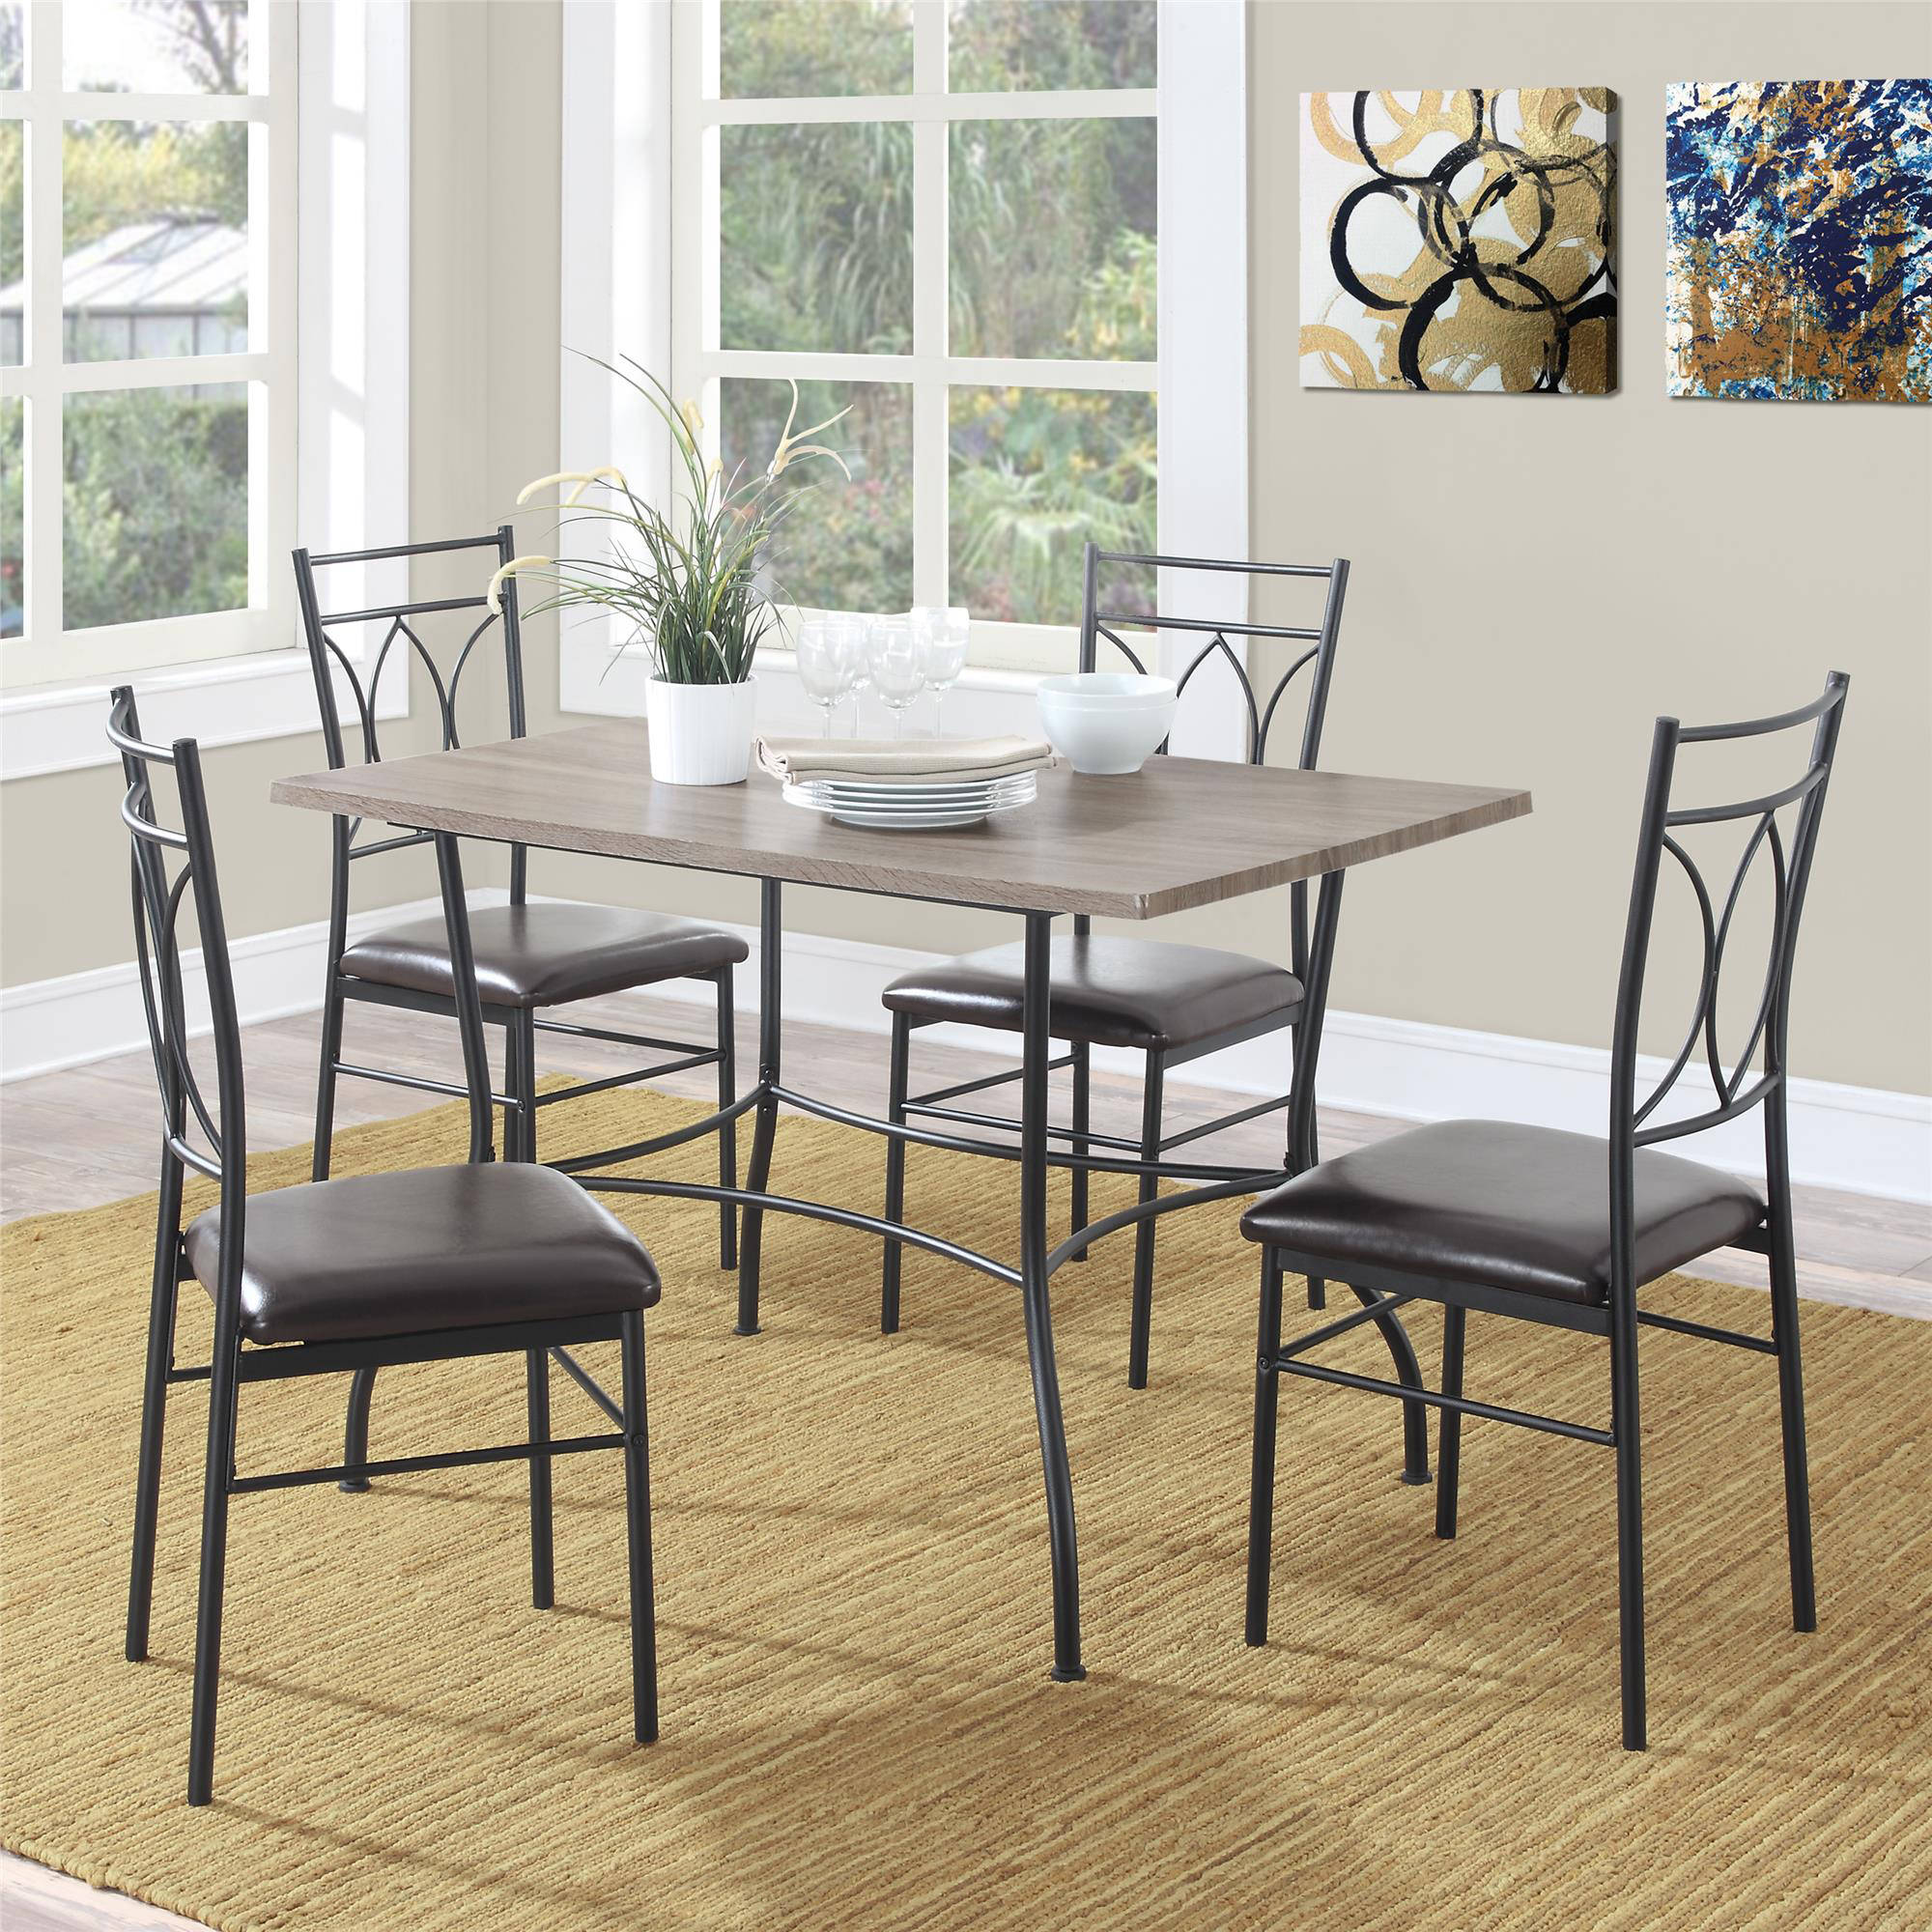 dorel living shelby 5-piece rustic wood and metal dining set